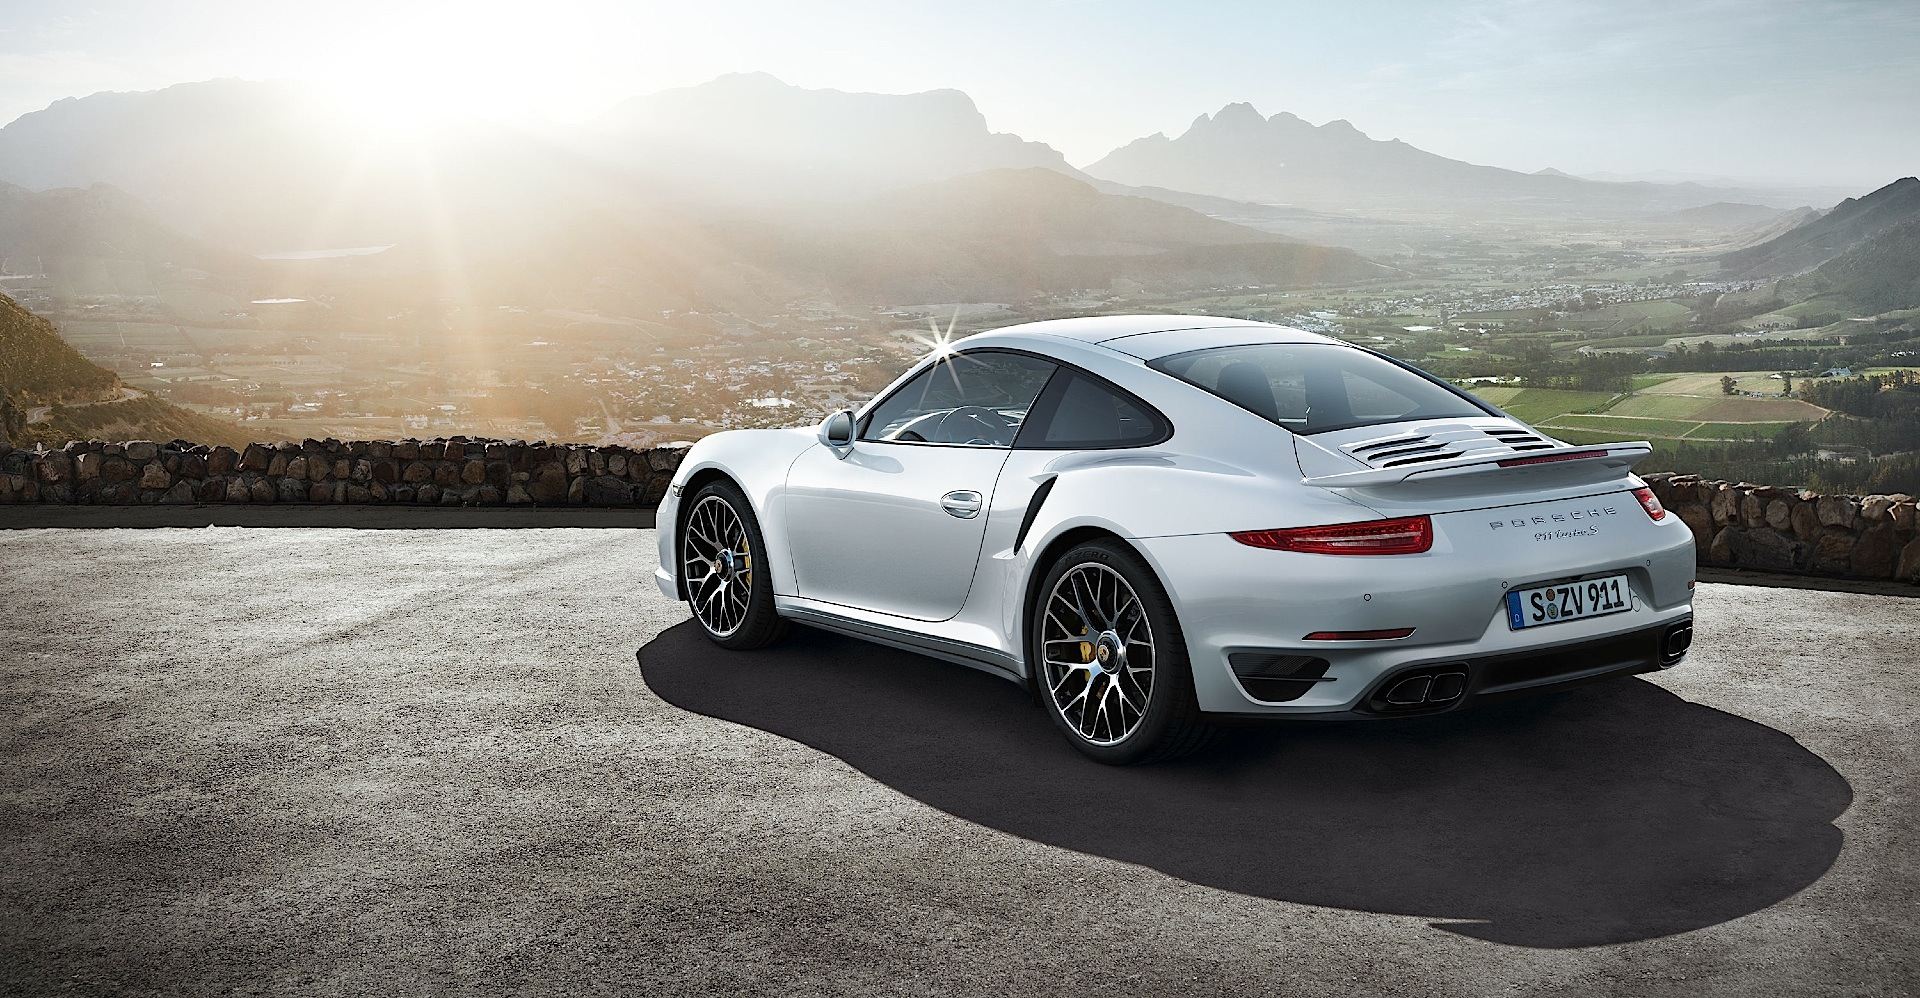 What Makes the Porsche 911 Turbo S So Special?